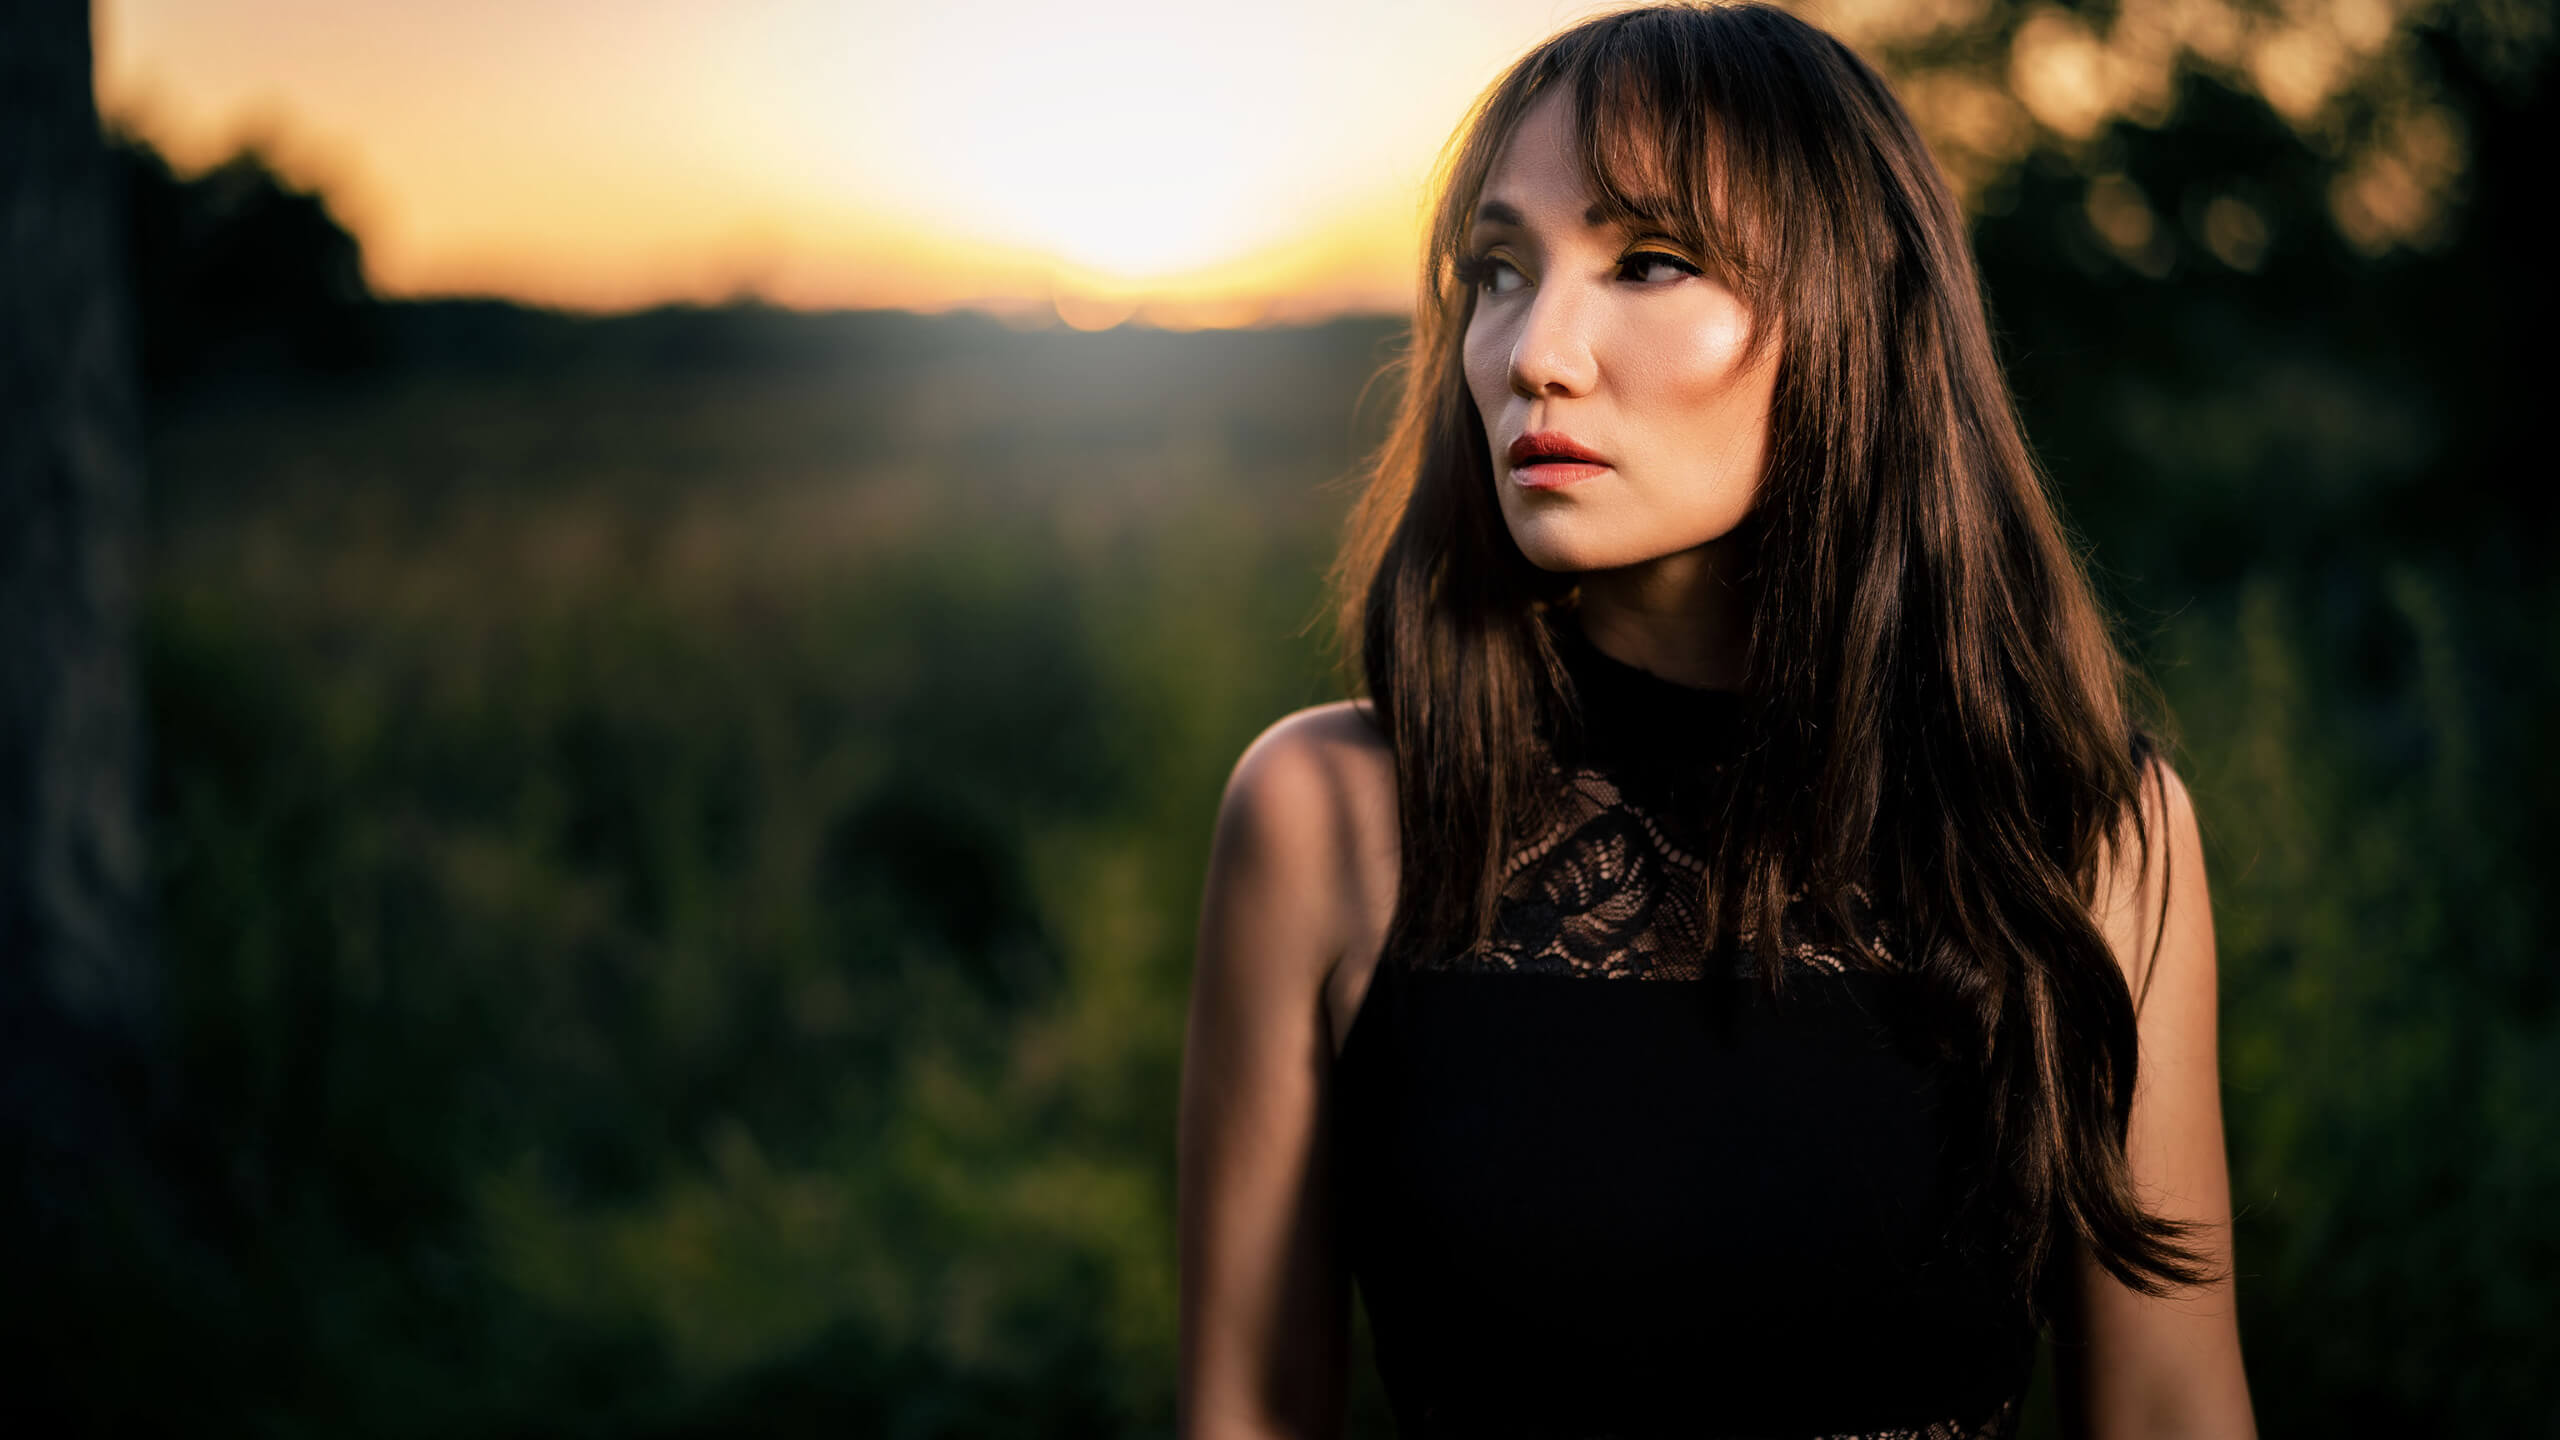 Singer Marnie - Follow Marnie Picture-independent Pop music artist from Germany